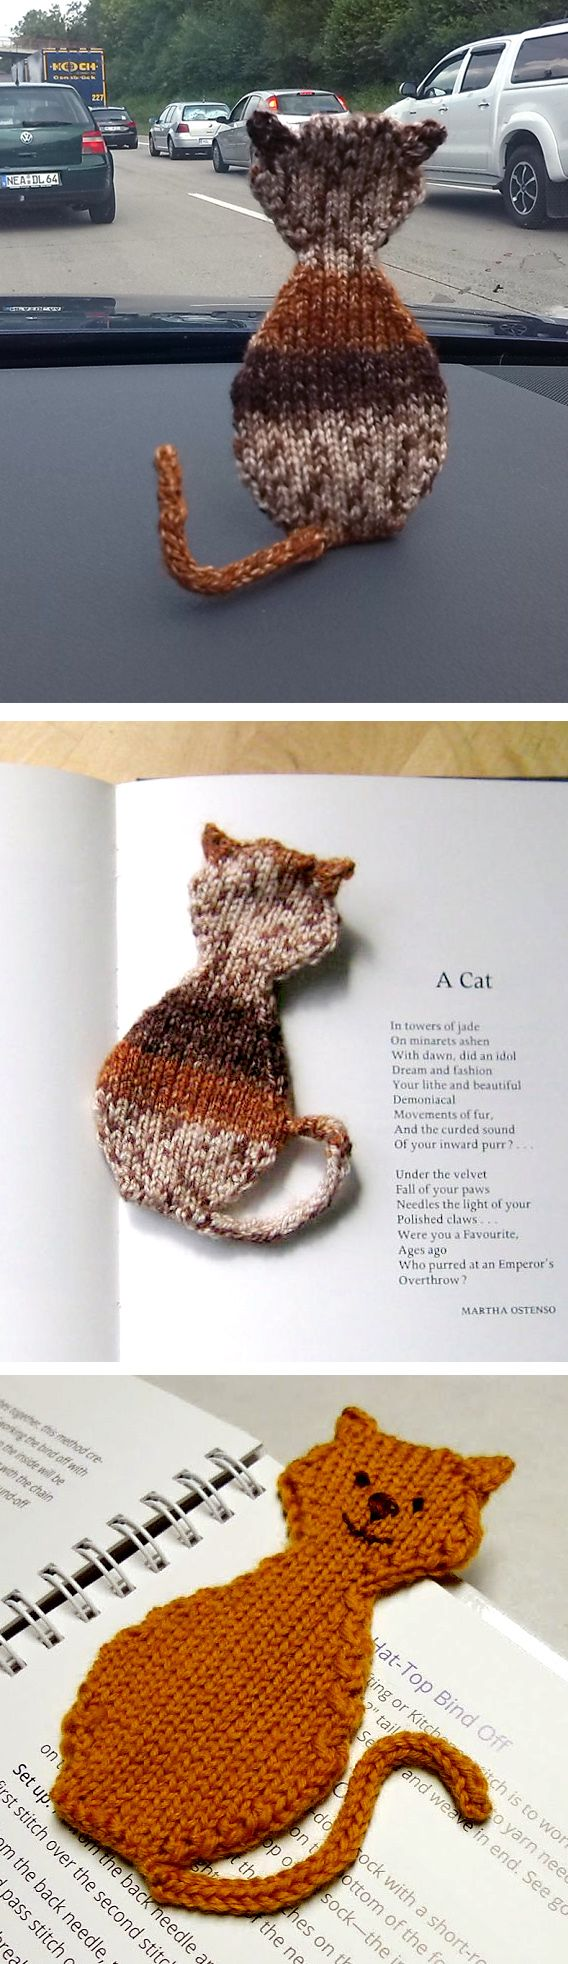 """Free Knitting Pattern for Cat Bookmark - Knit in one piece with the ears picked up and the tail in i-cord. Approximately 7"""" / 18 cm long. Designed by Stana D.Sortor. Pictured projects by seymorandPatty7737"""